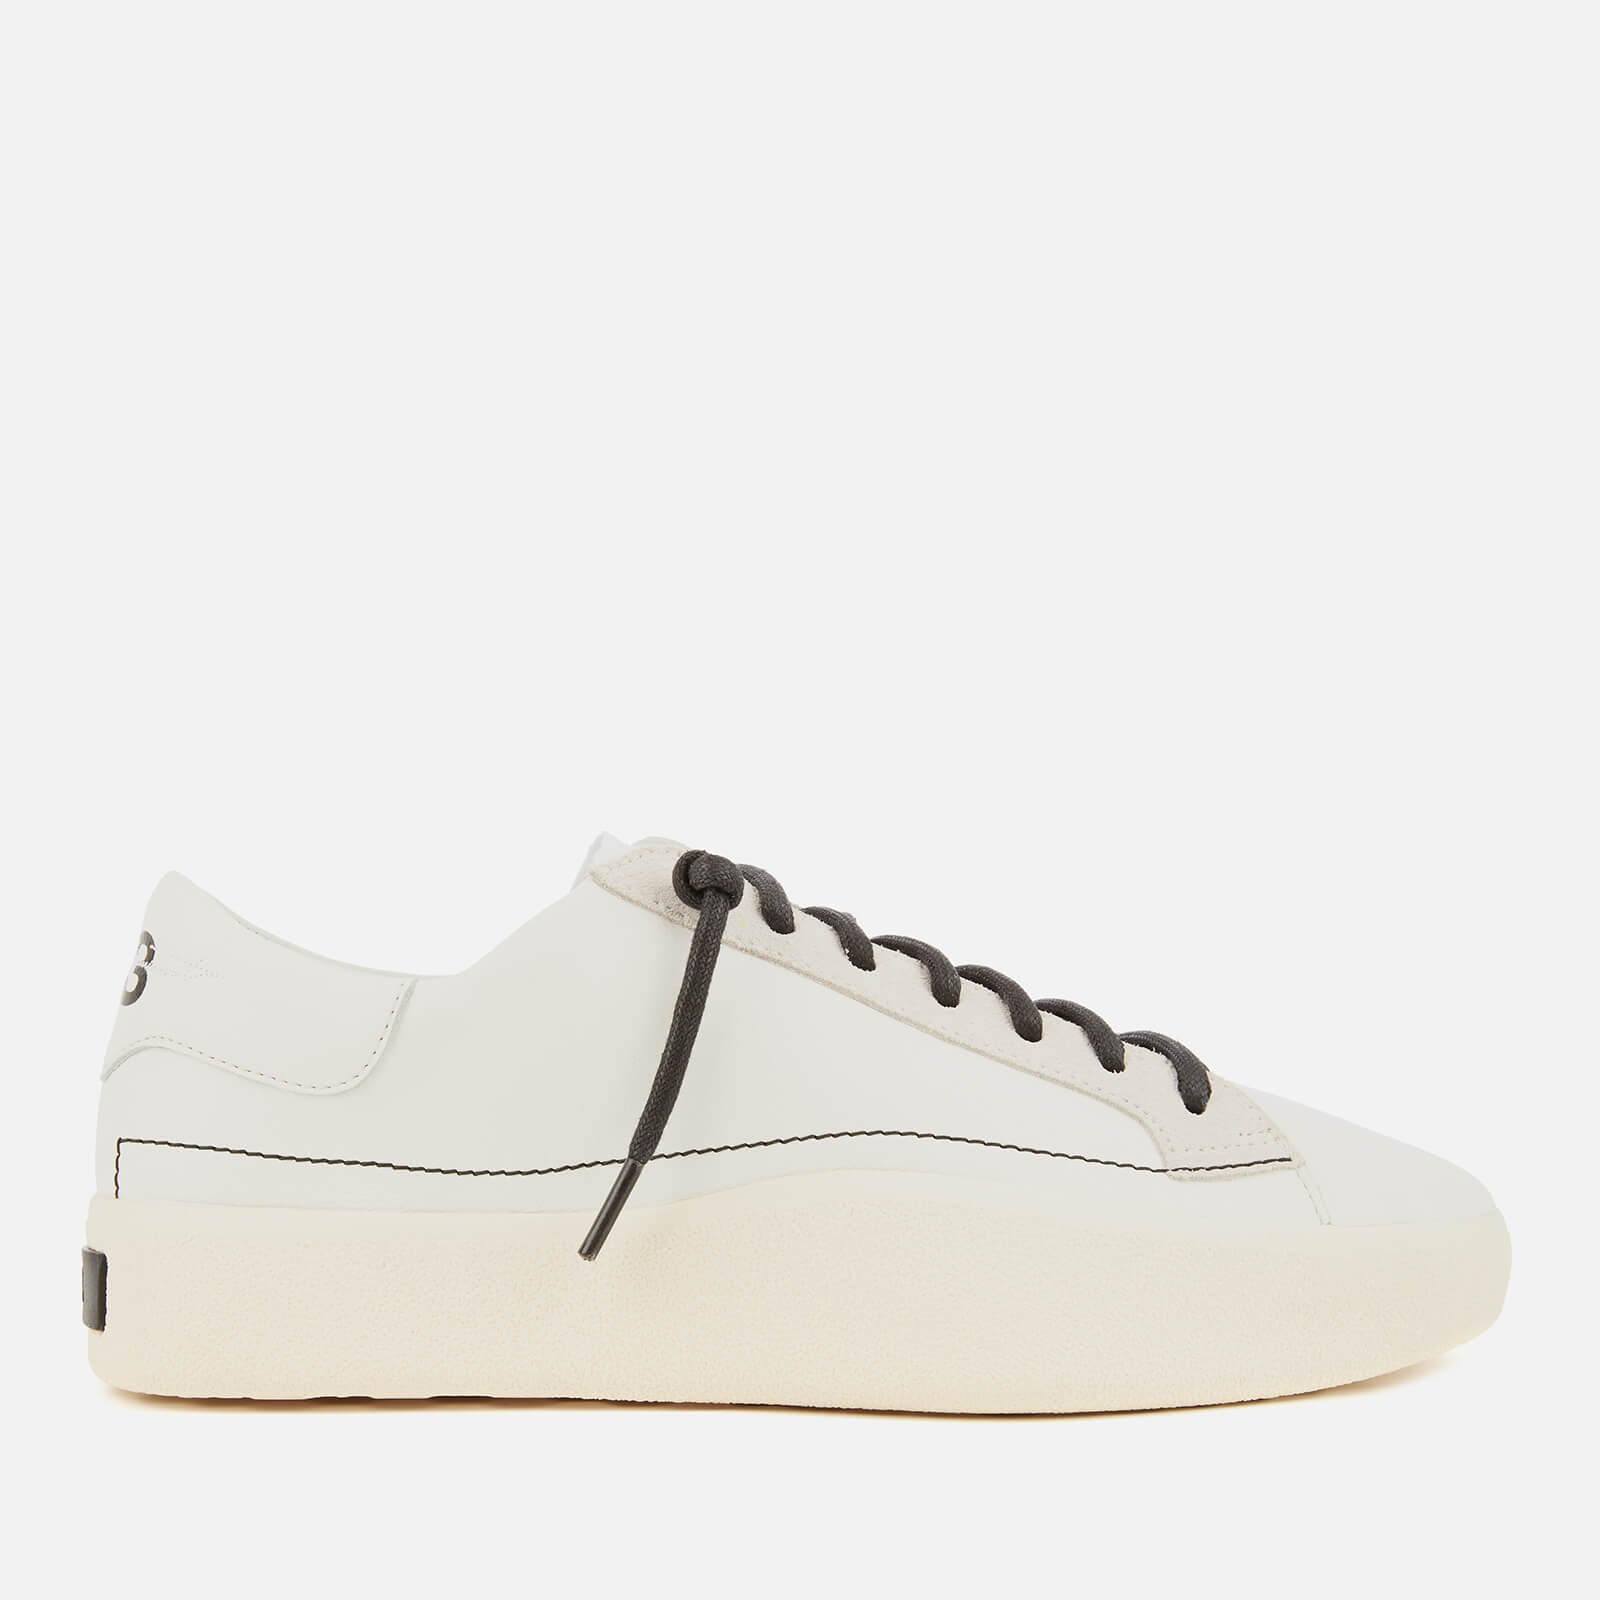 e8c343237a4bb Y-3 Men s Tangutsu Lace Trainers - FTWR White - Free UK Delivery over £50